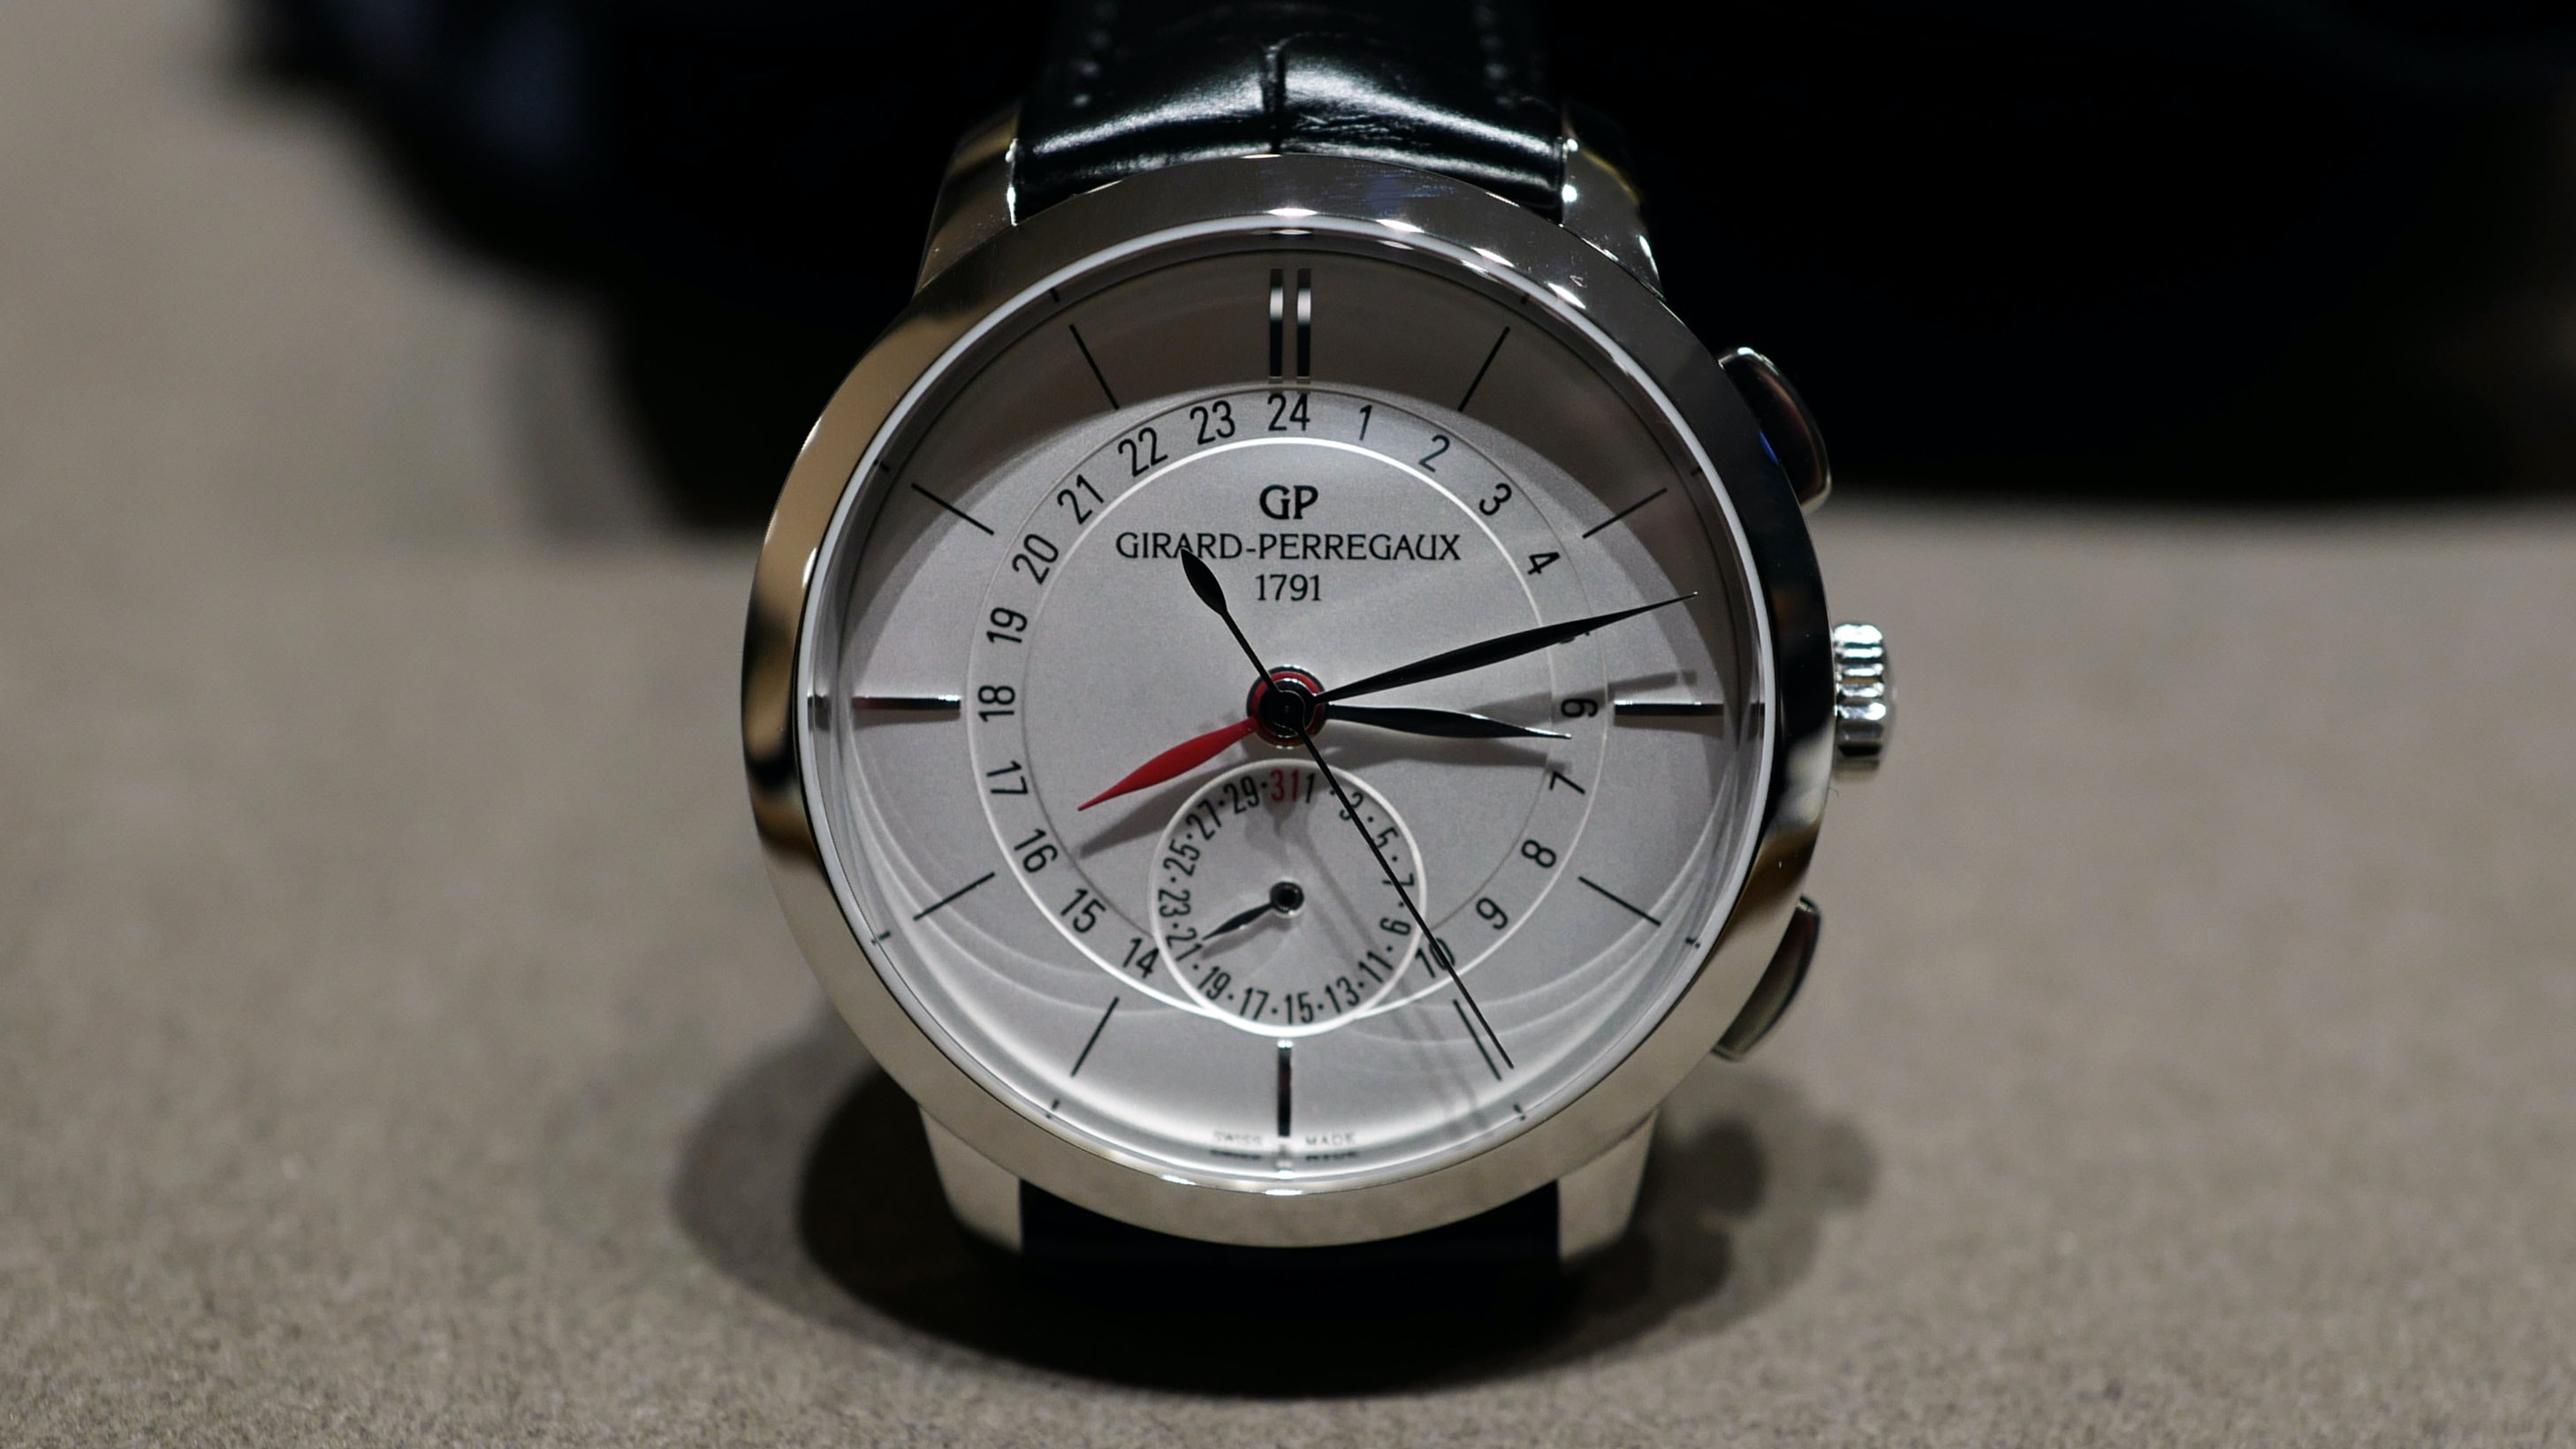 Introducing: The Girard-Perregaux 1966 Dual Time, A User-Friendly And Cost-Friendly Travel Companion Introducing: The Girard-Perregaux 1966 Dual Time, A User-Friendly And Cost-Friendly Travel Companion L1040355